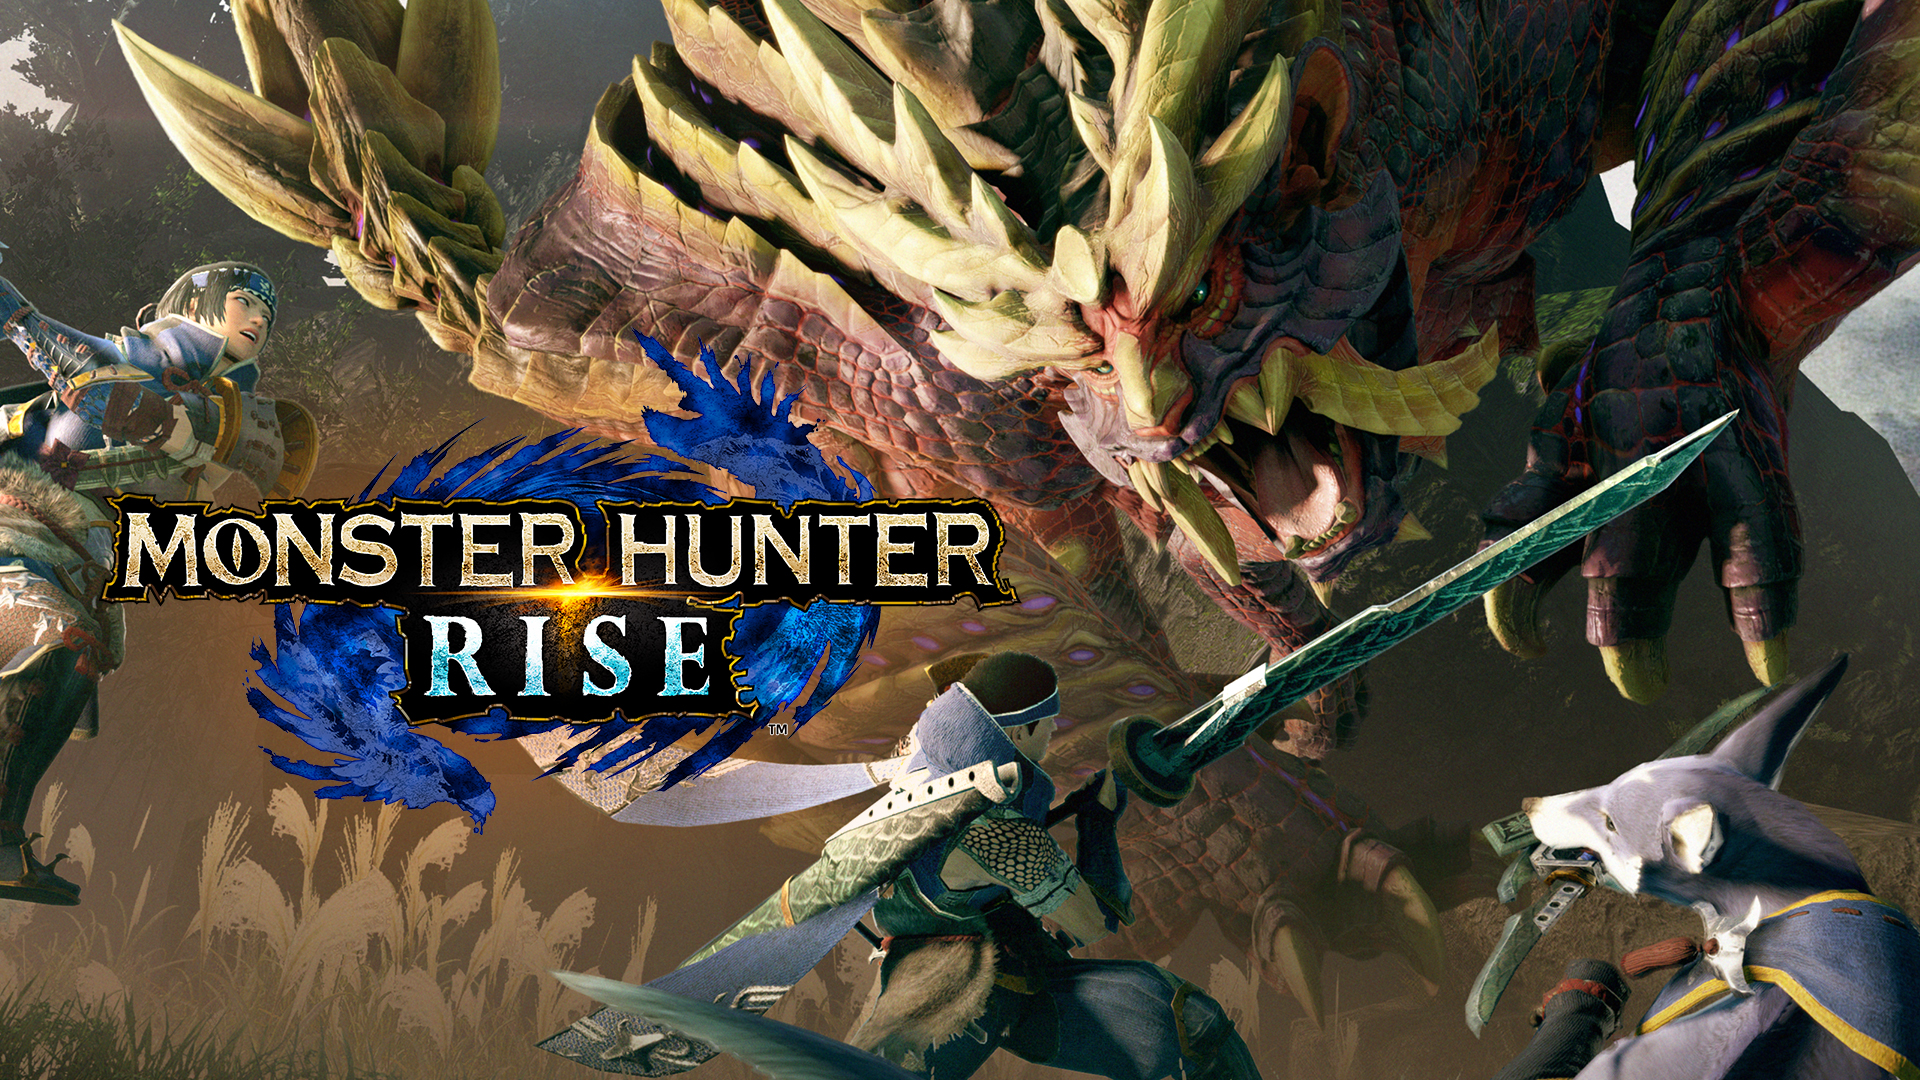 Most Anticipated Games - Monster Hunter Rise